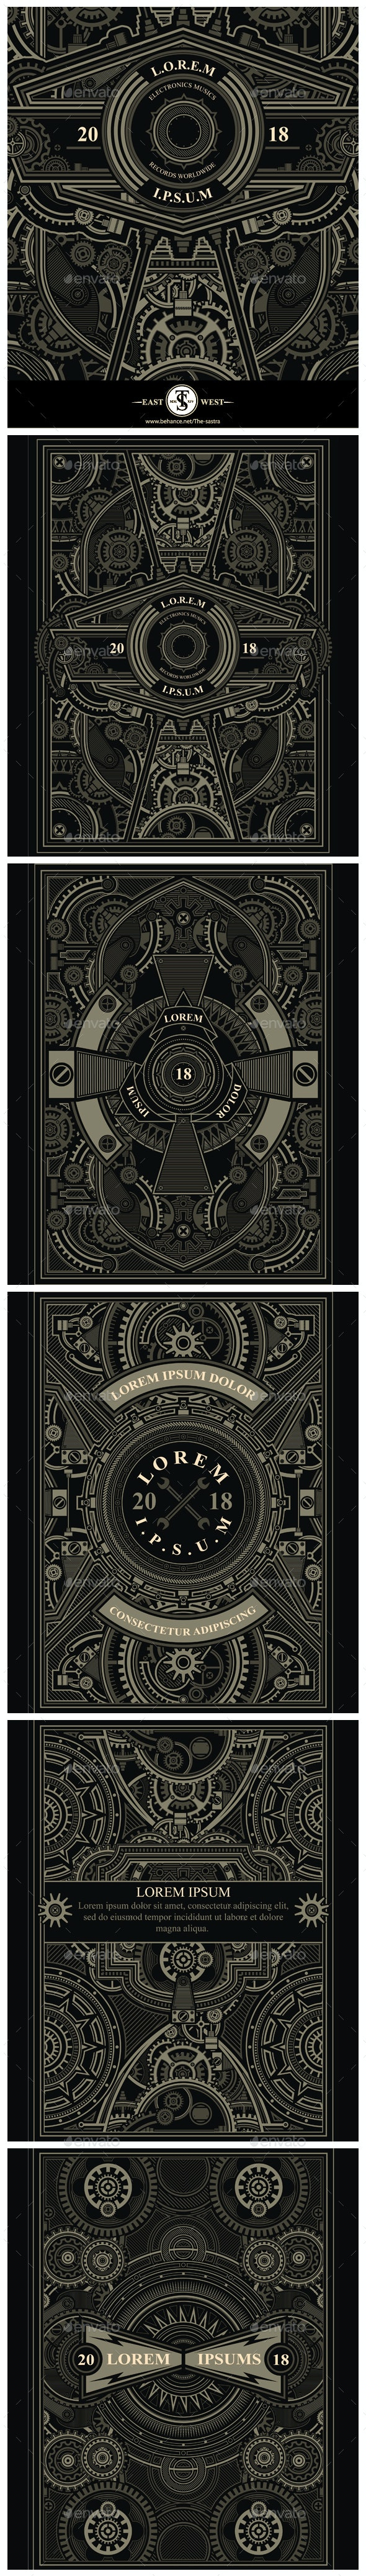 5 Steampunk Posters - Backgrounds Decorative